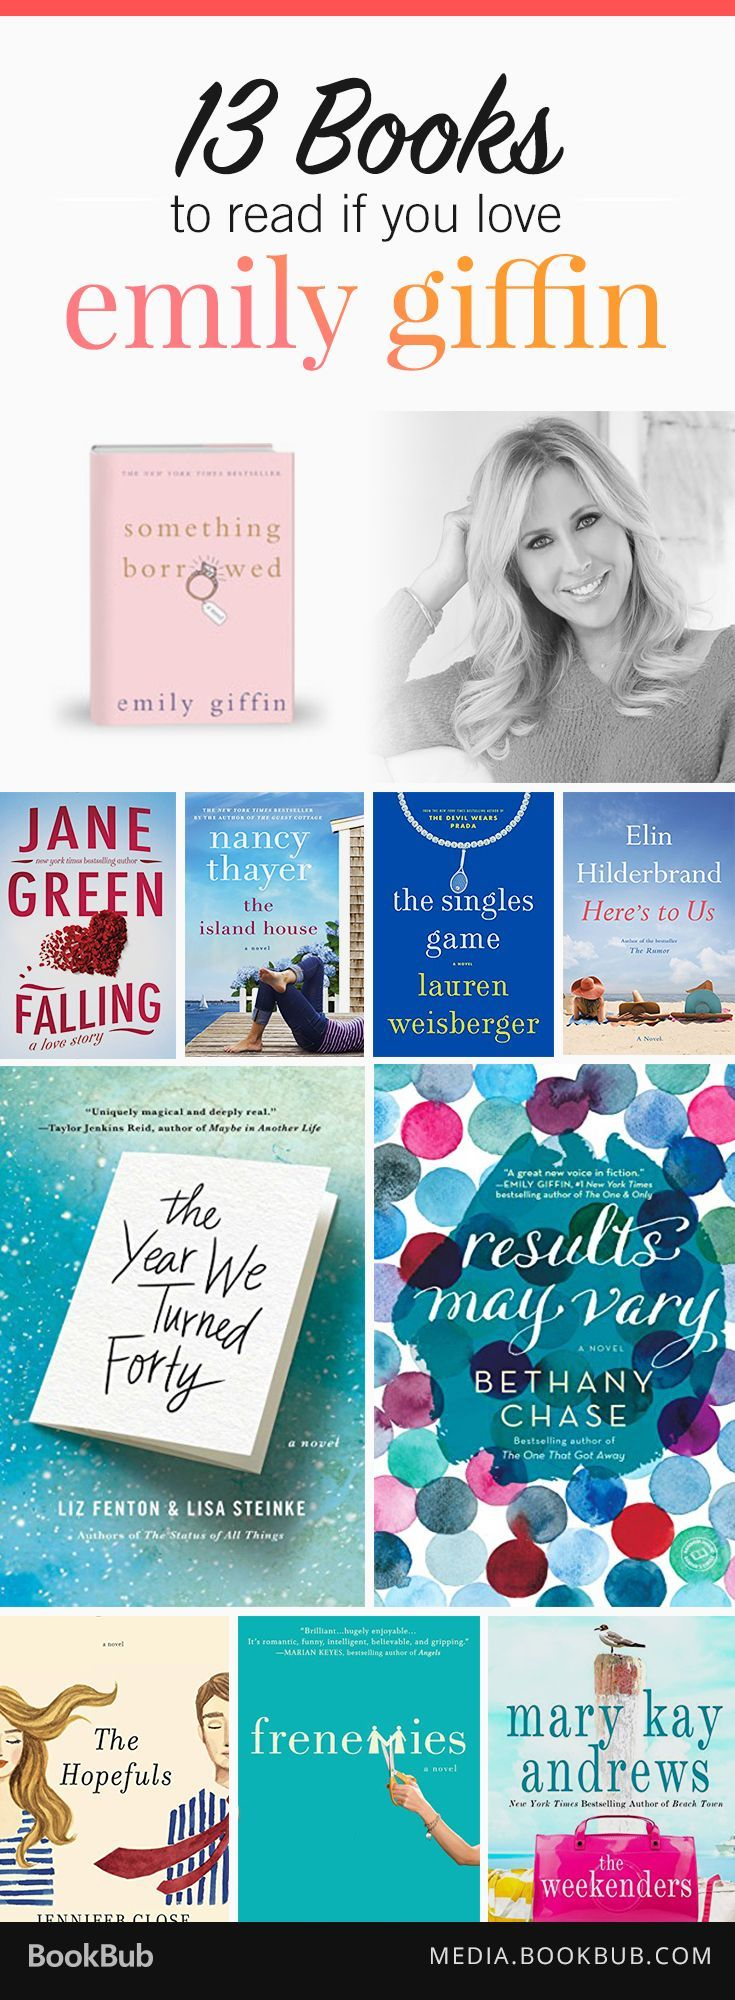 If You Love Emily Giffin, Check Out These 13 Great Books